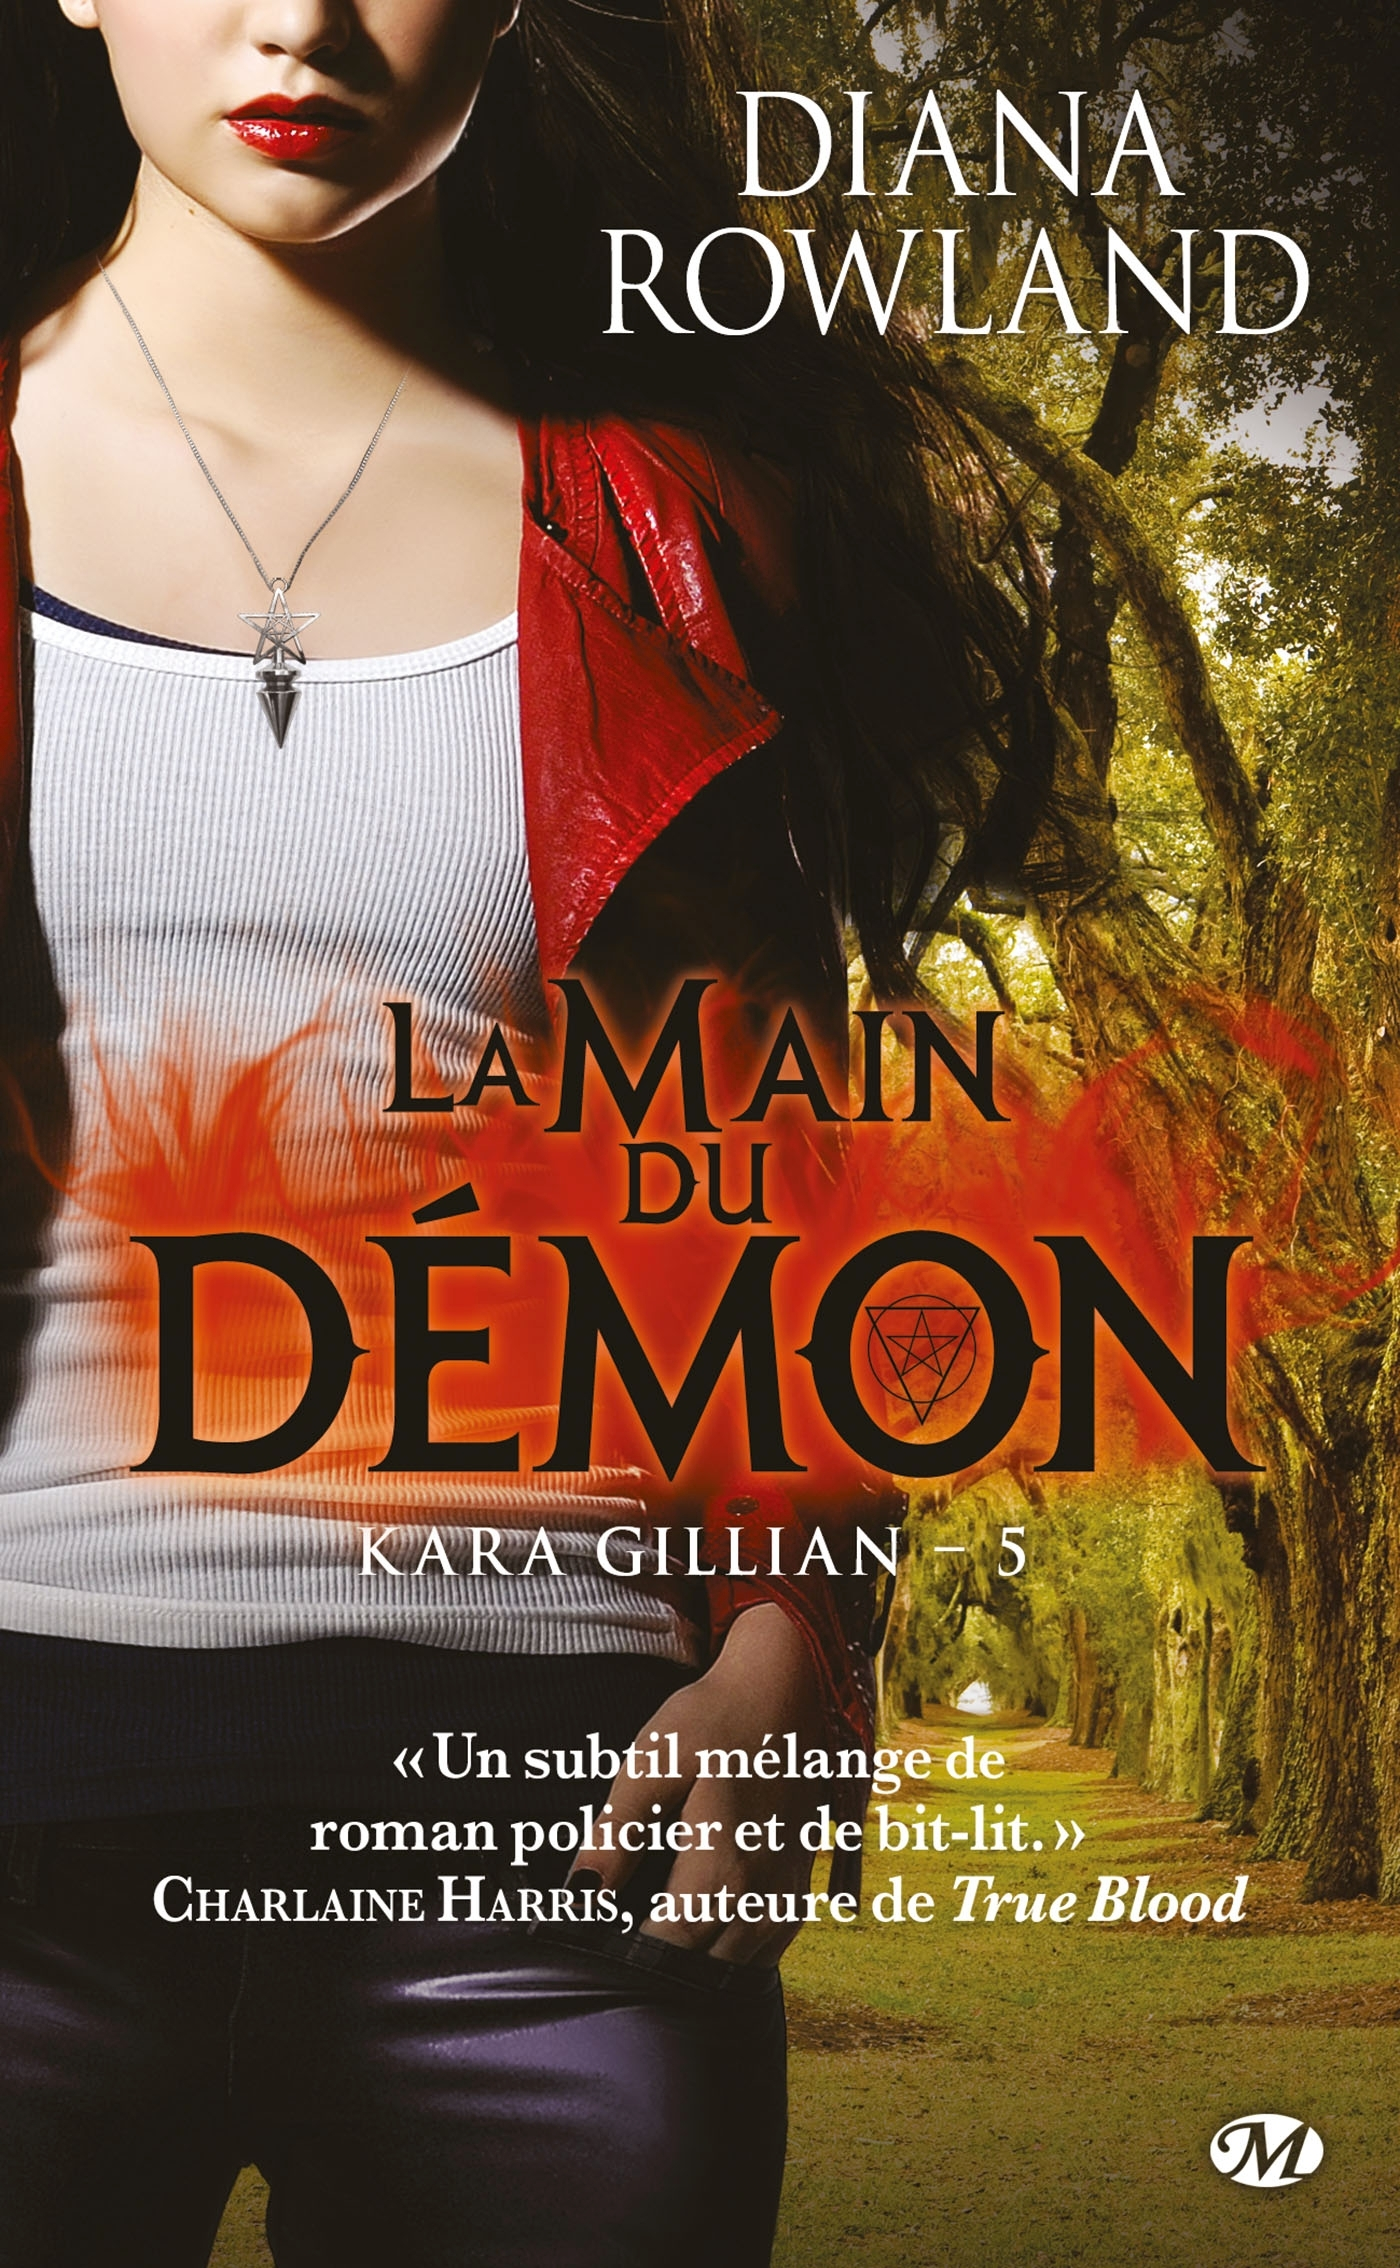 KARA GILLIAN, T5 : LA MAIN DU DEMON